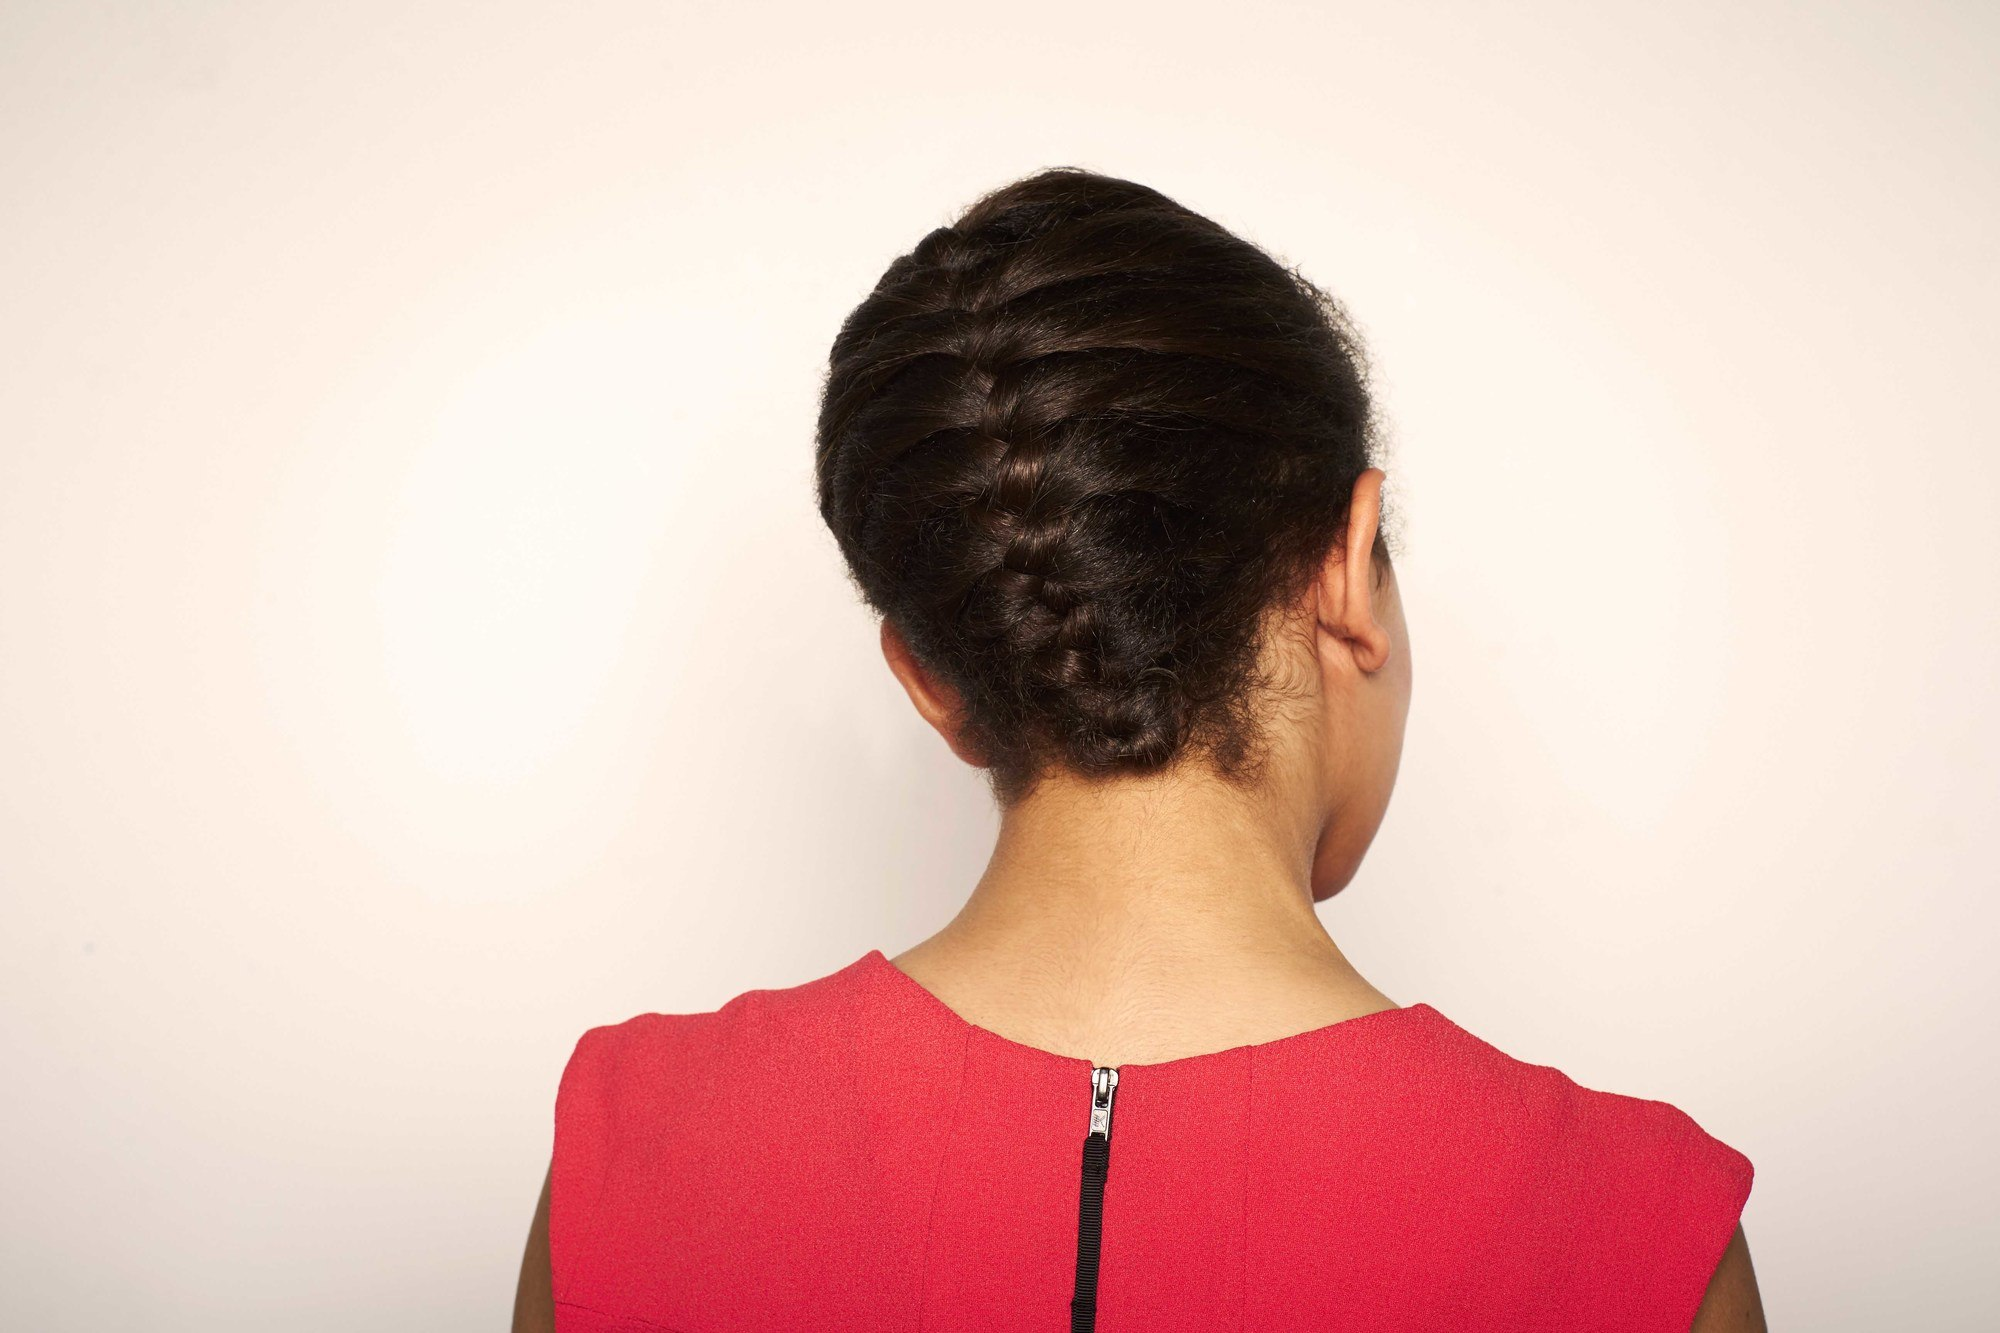 transitioning hairstyles and hair ideas to help make going